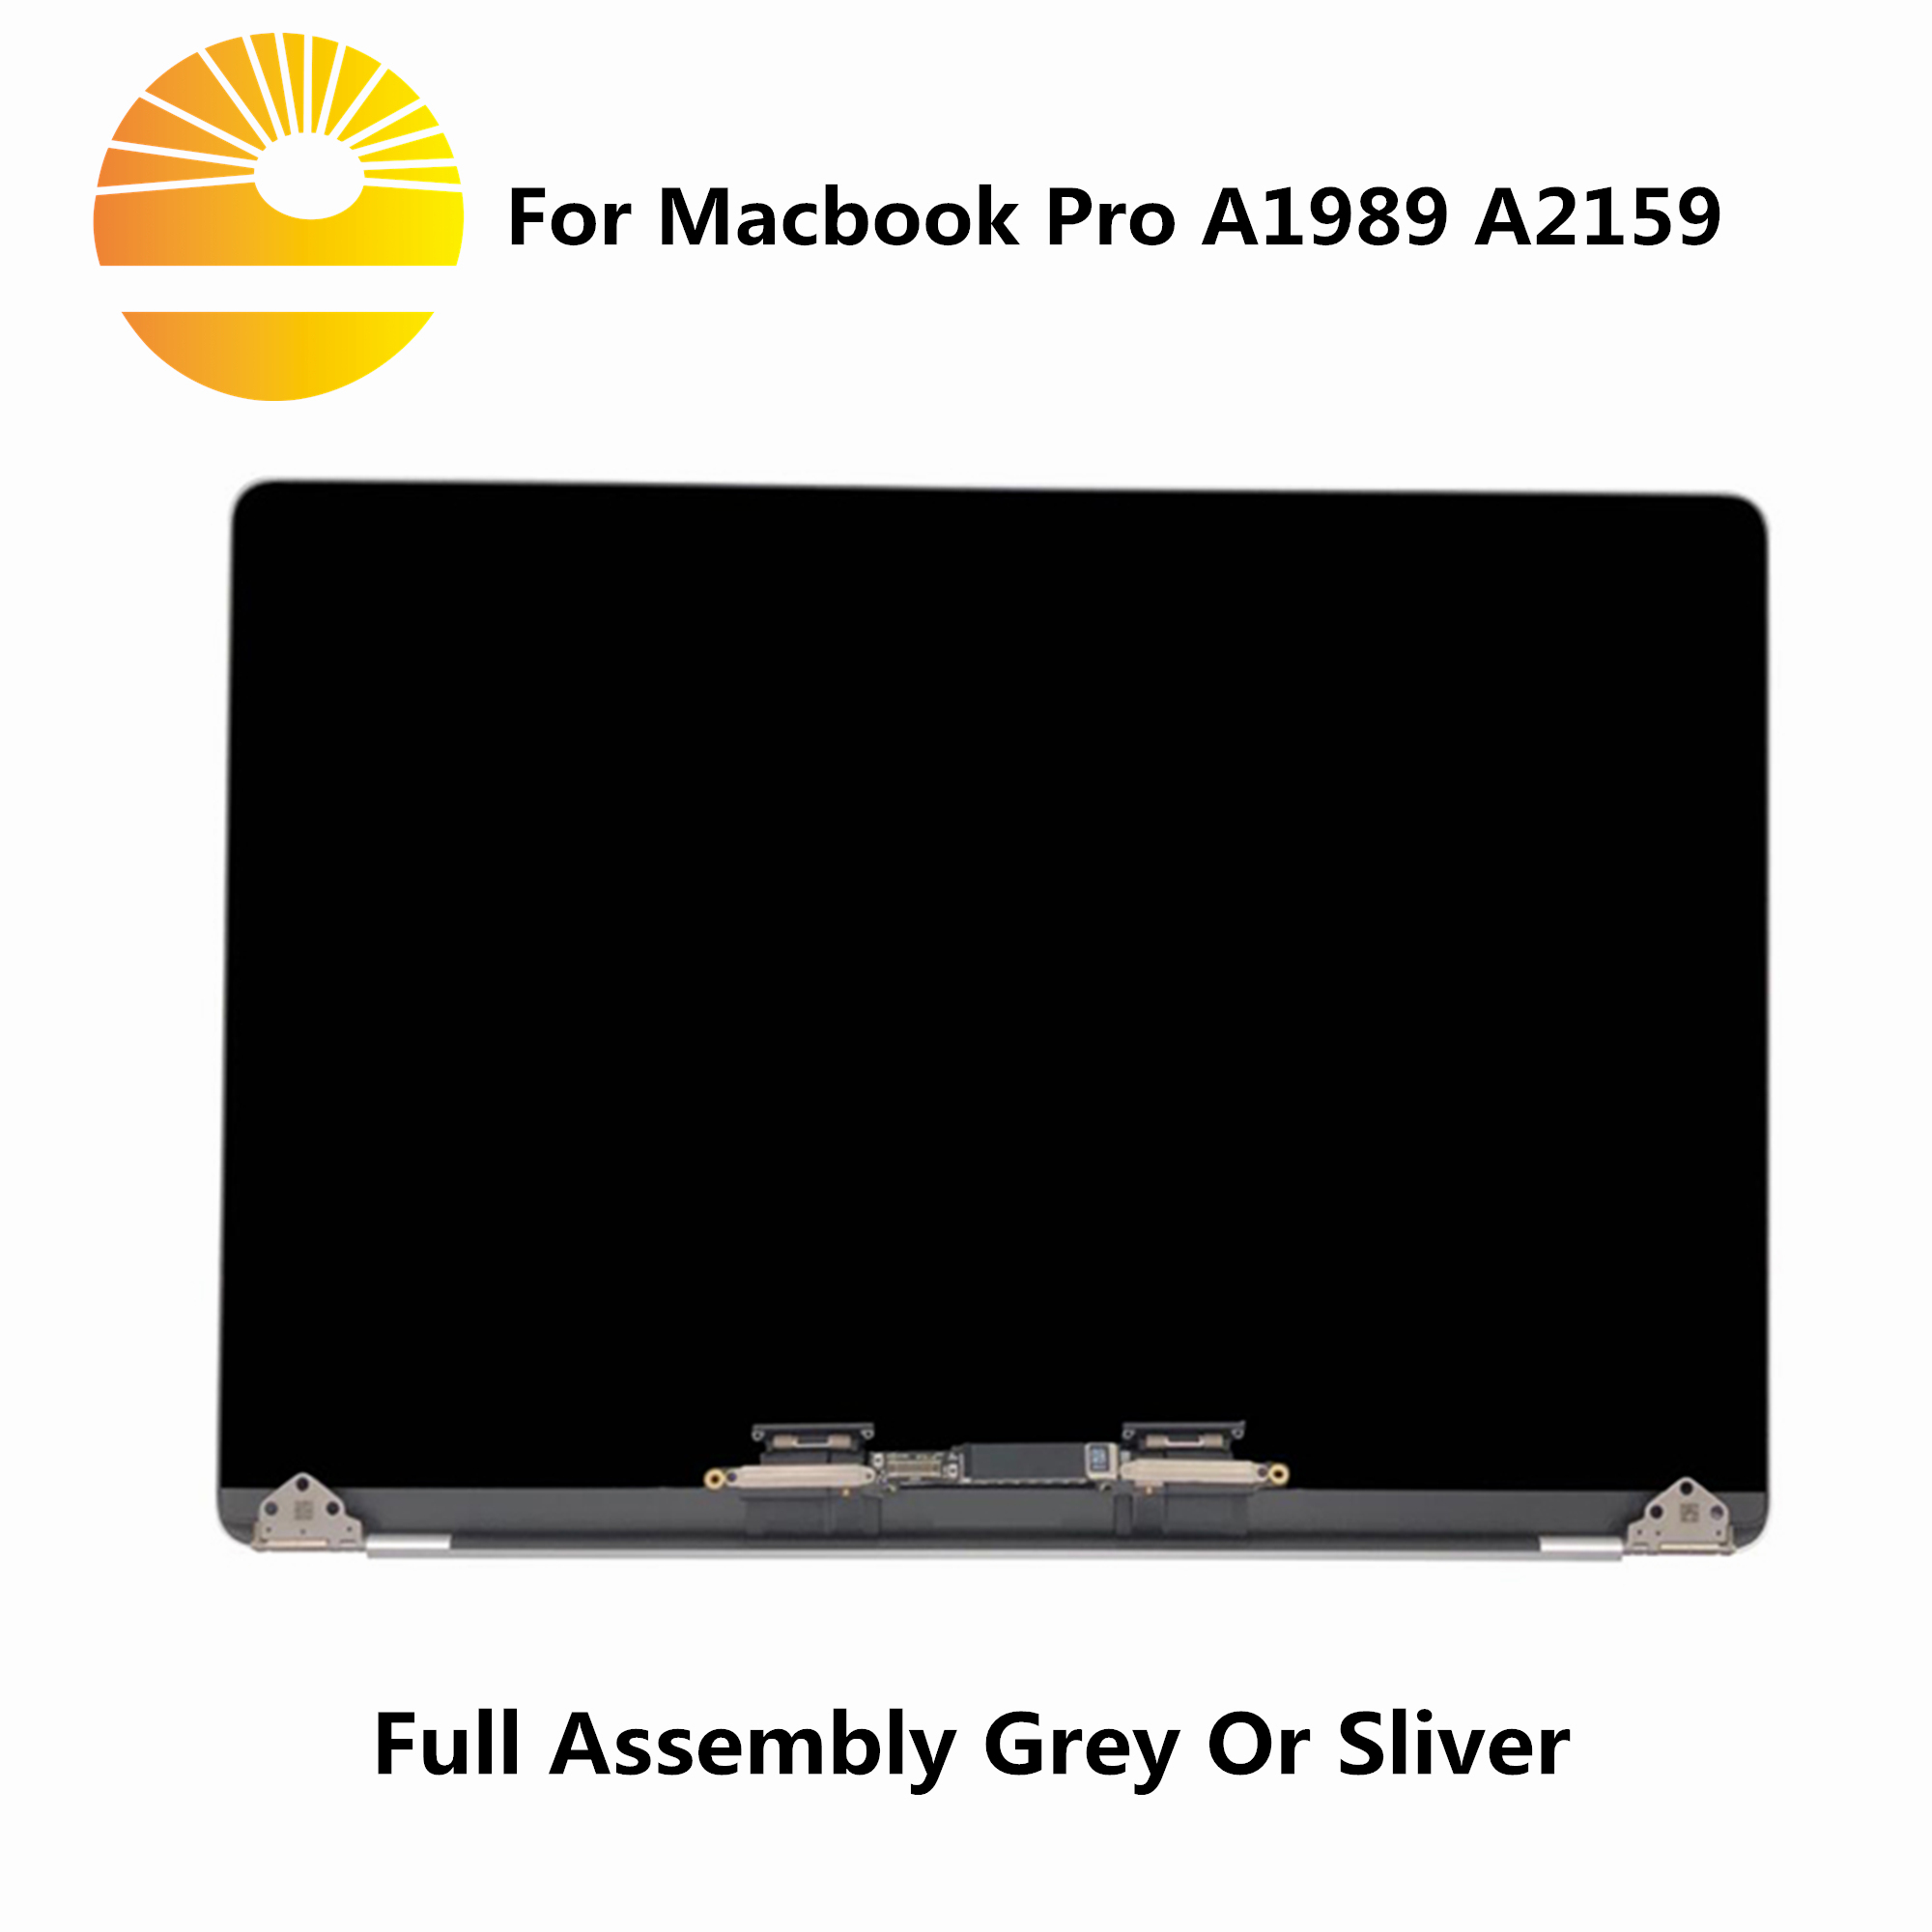 """Brand New For Macbook Pro 13"""" Retina A1989 Display Replacement Digitizer For A2159 2018 2019 YearLaptop LCD Screen   -"""